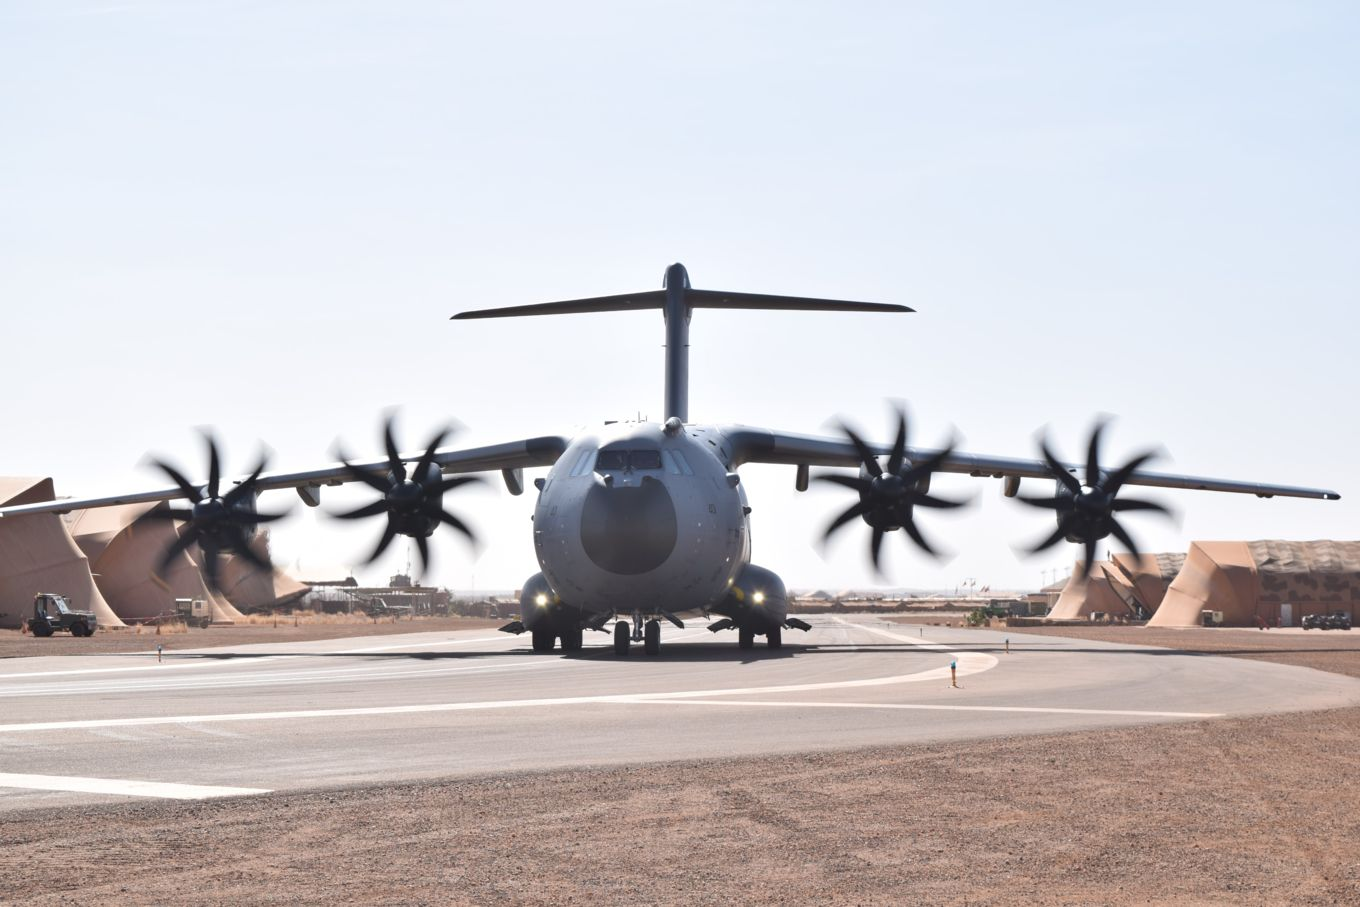 Image shows an RAF A400M Atlas aircraft on the ground.